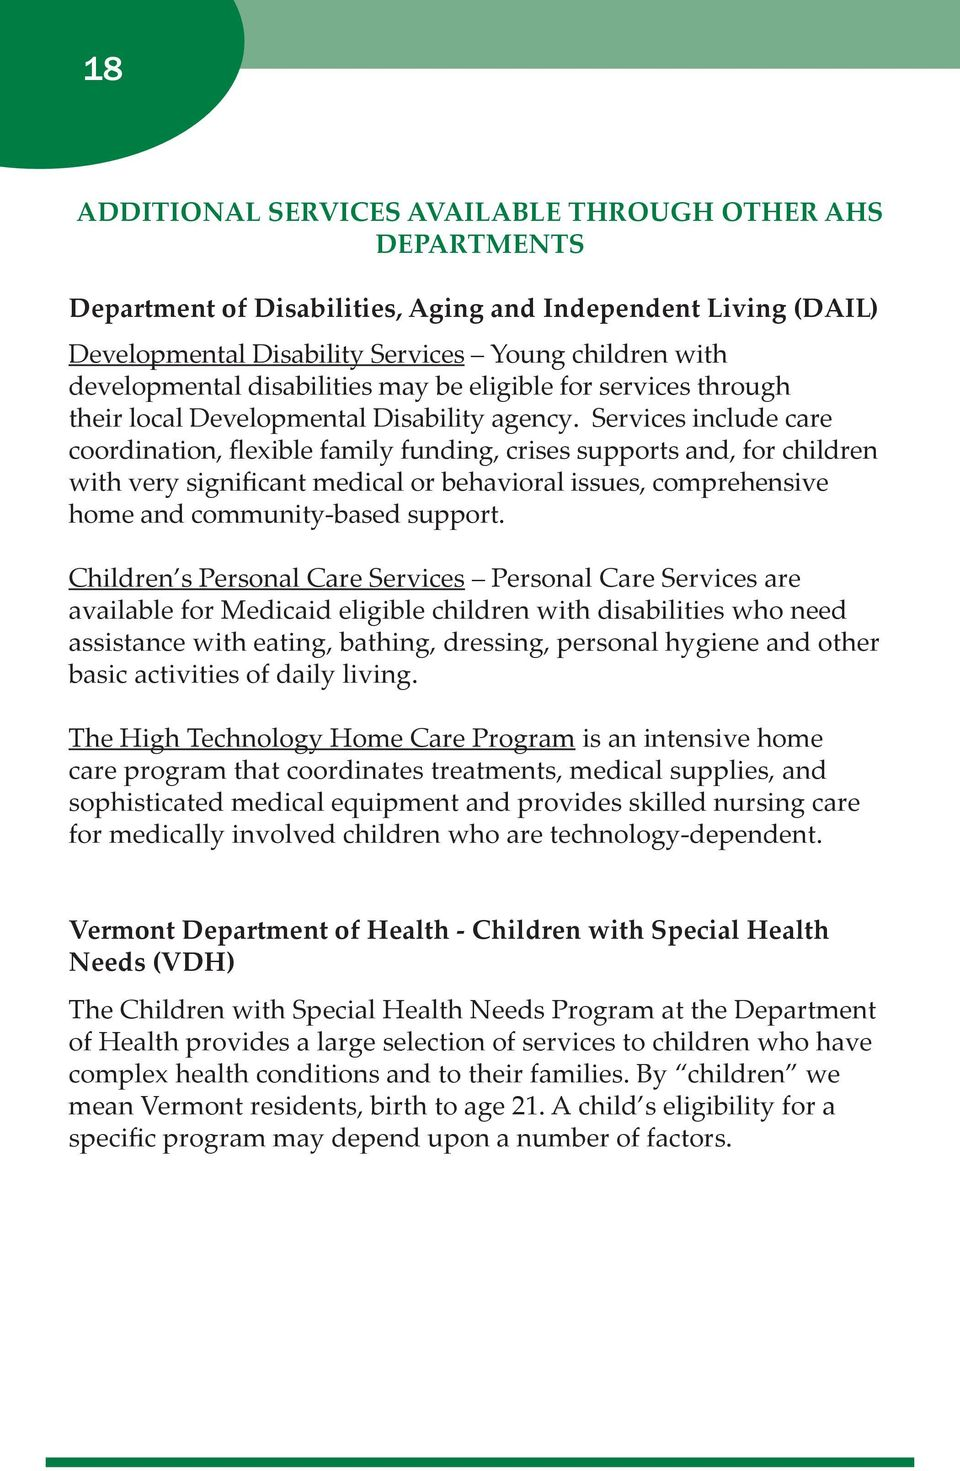 Services include care coordination, flexible family funding, crises supports and, for children with very significant medical or behavioral issues, comprehensive home and community-based support.